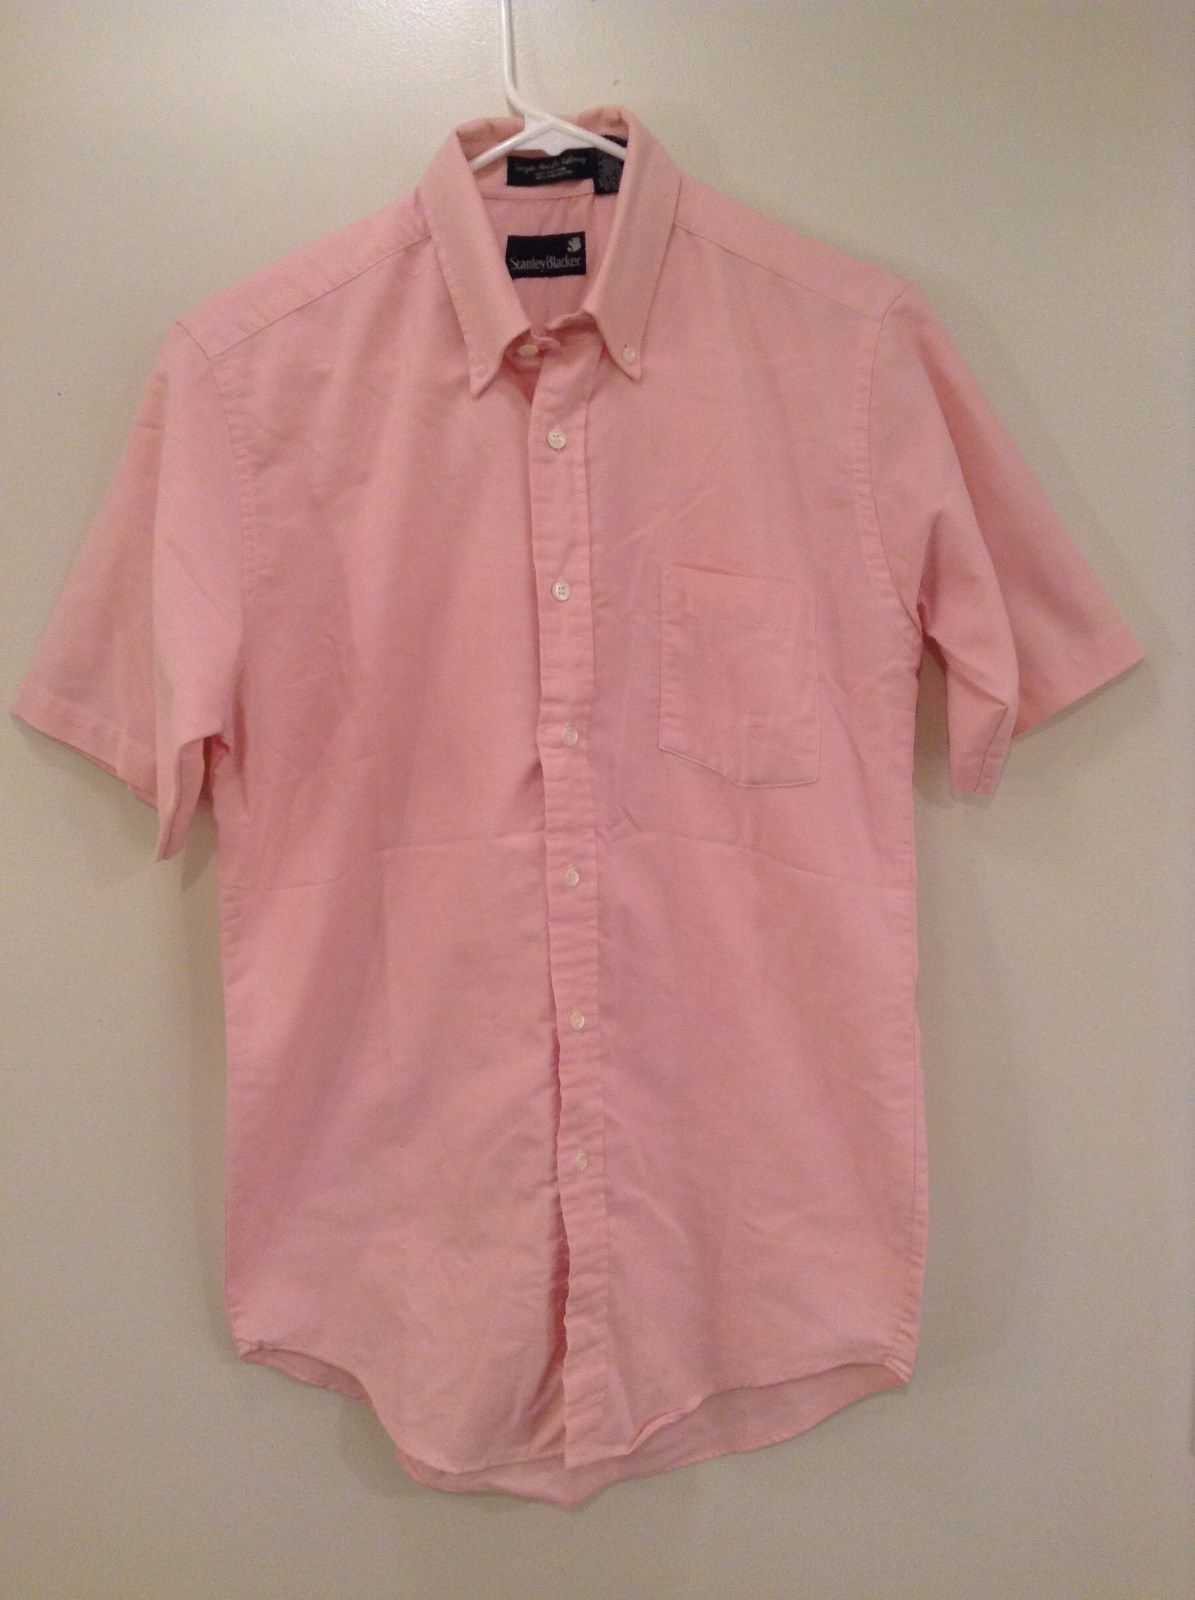 Stanley Blacker Pink Short Sleeve Button Up Shirt Chest Pocket Size 15